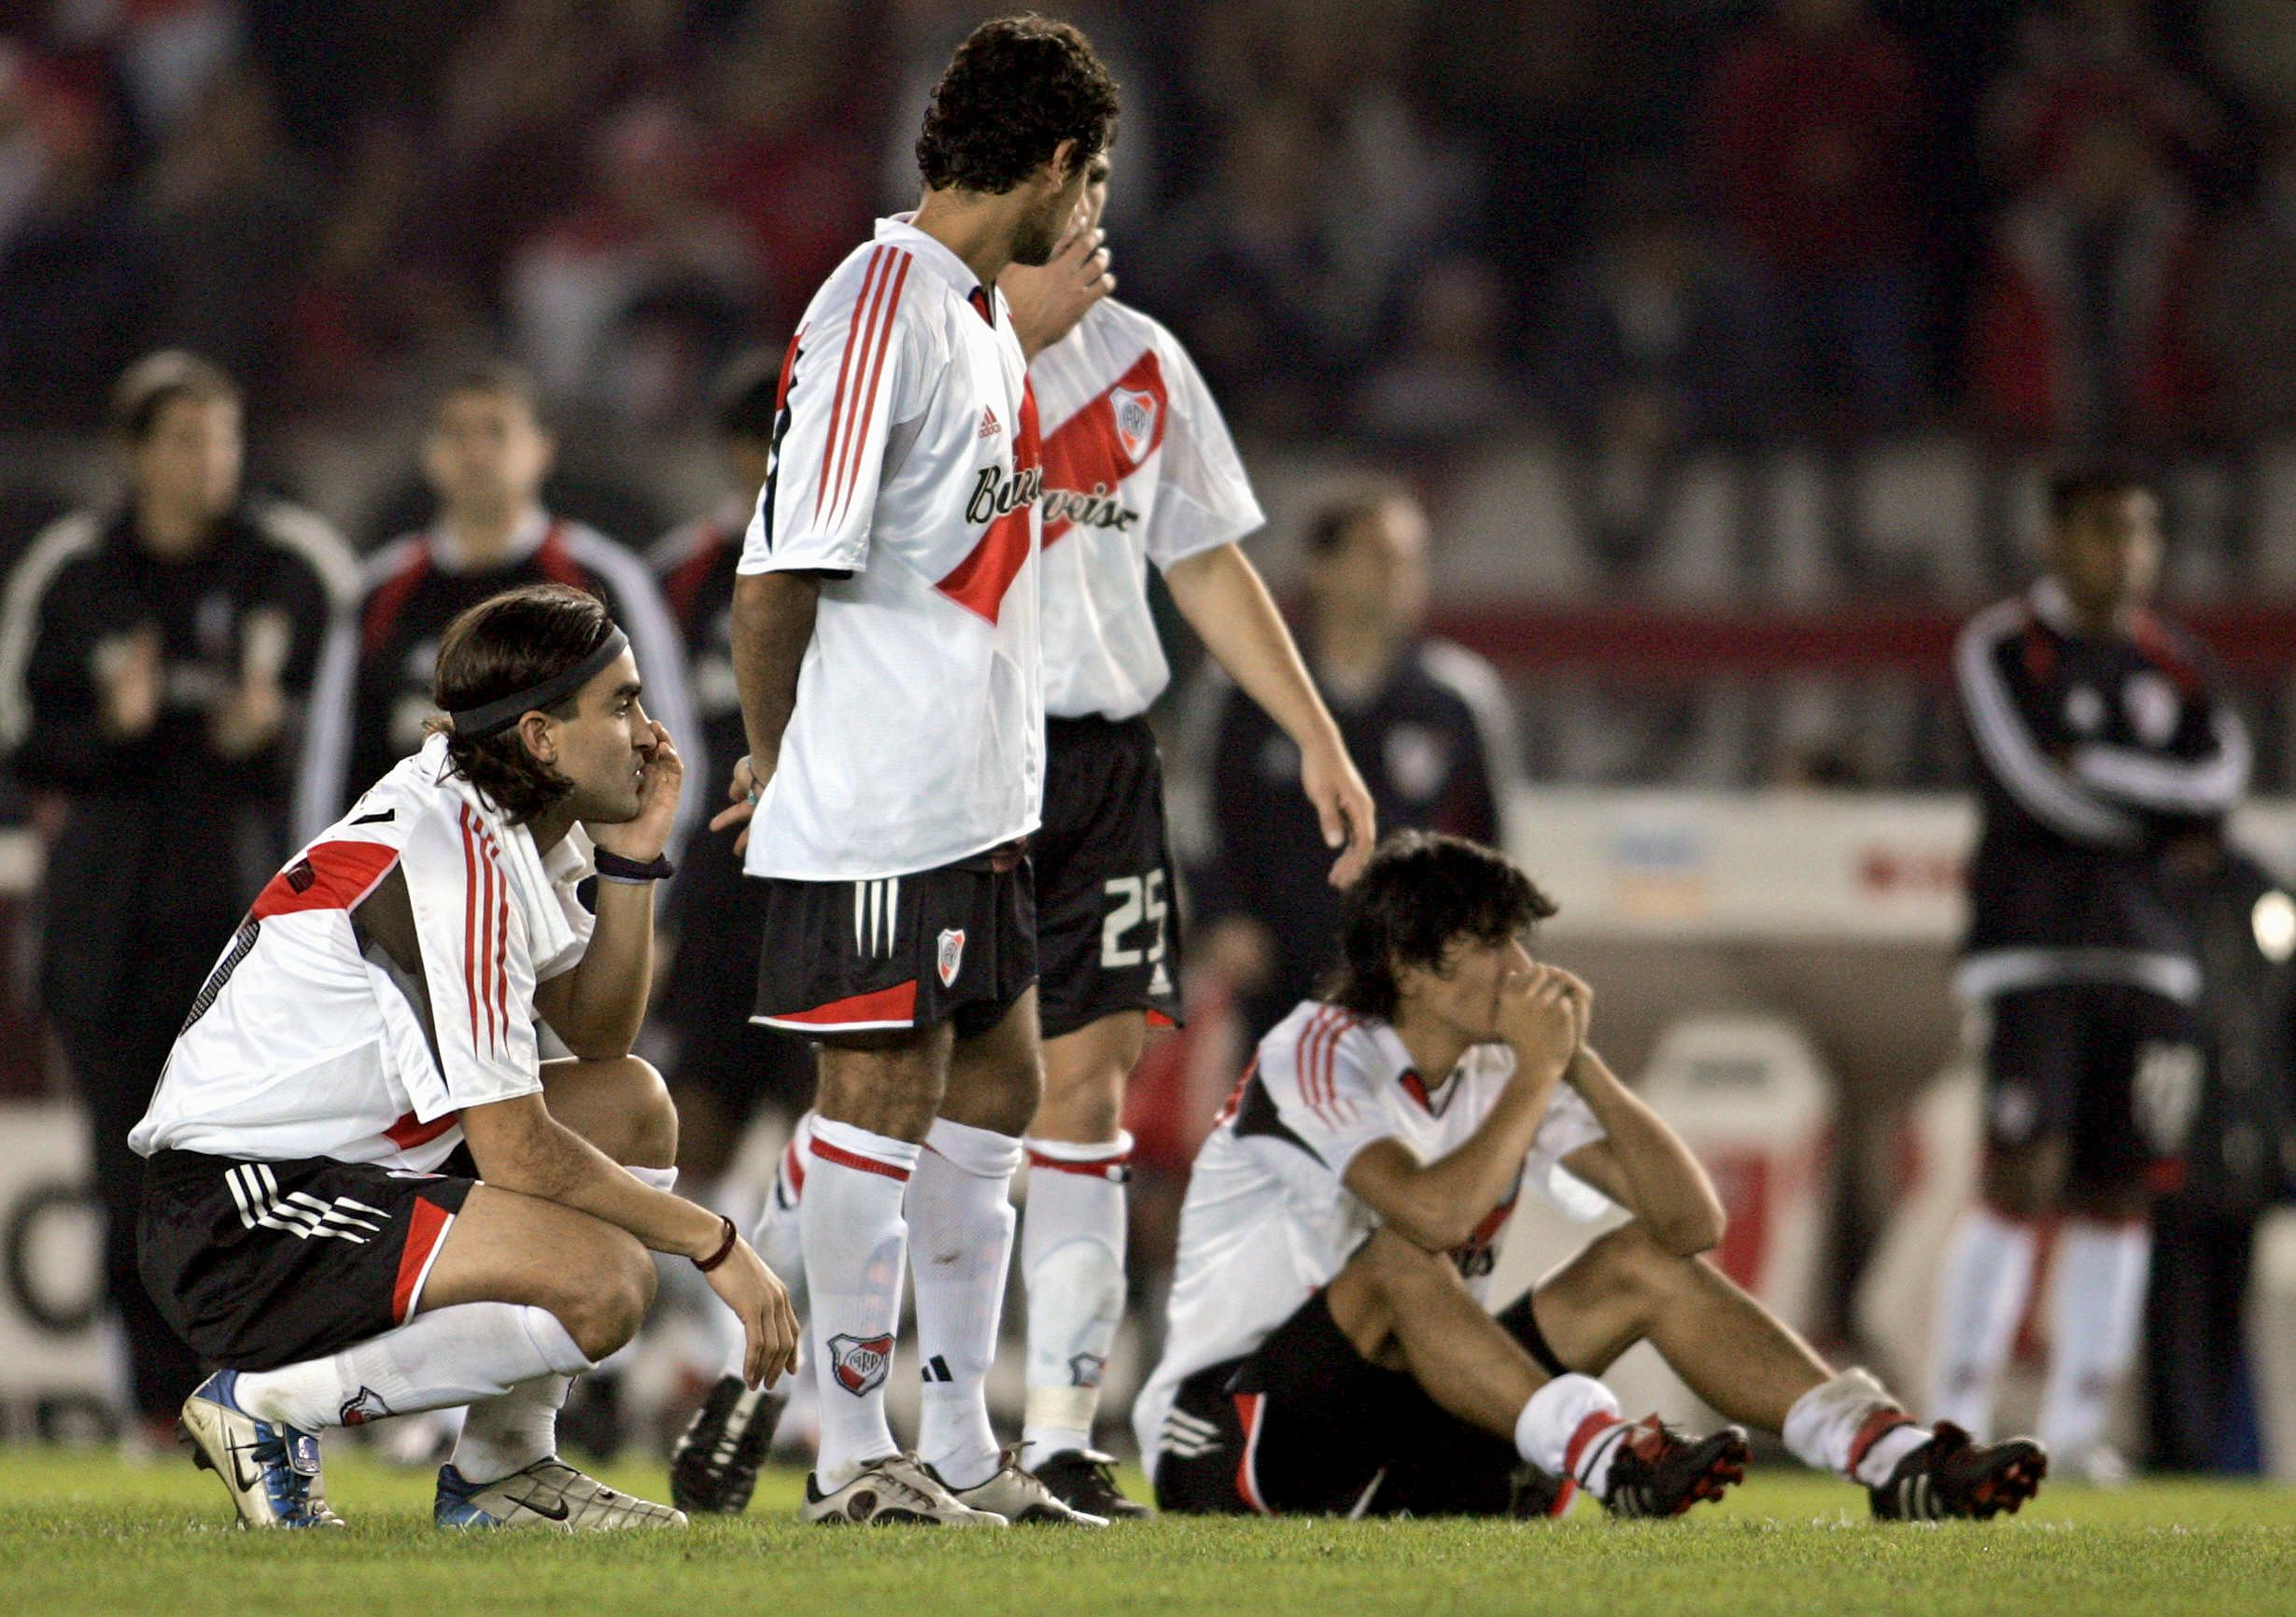 River Plate - Boca Juniors 2004